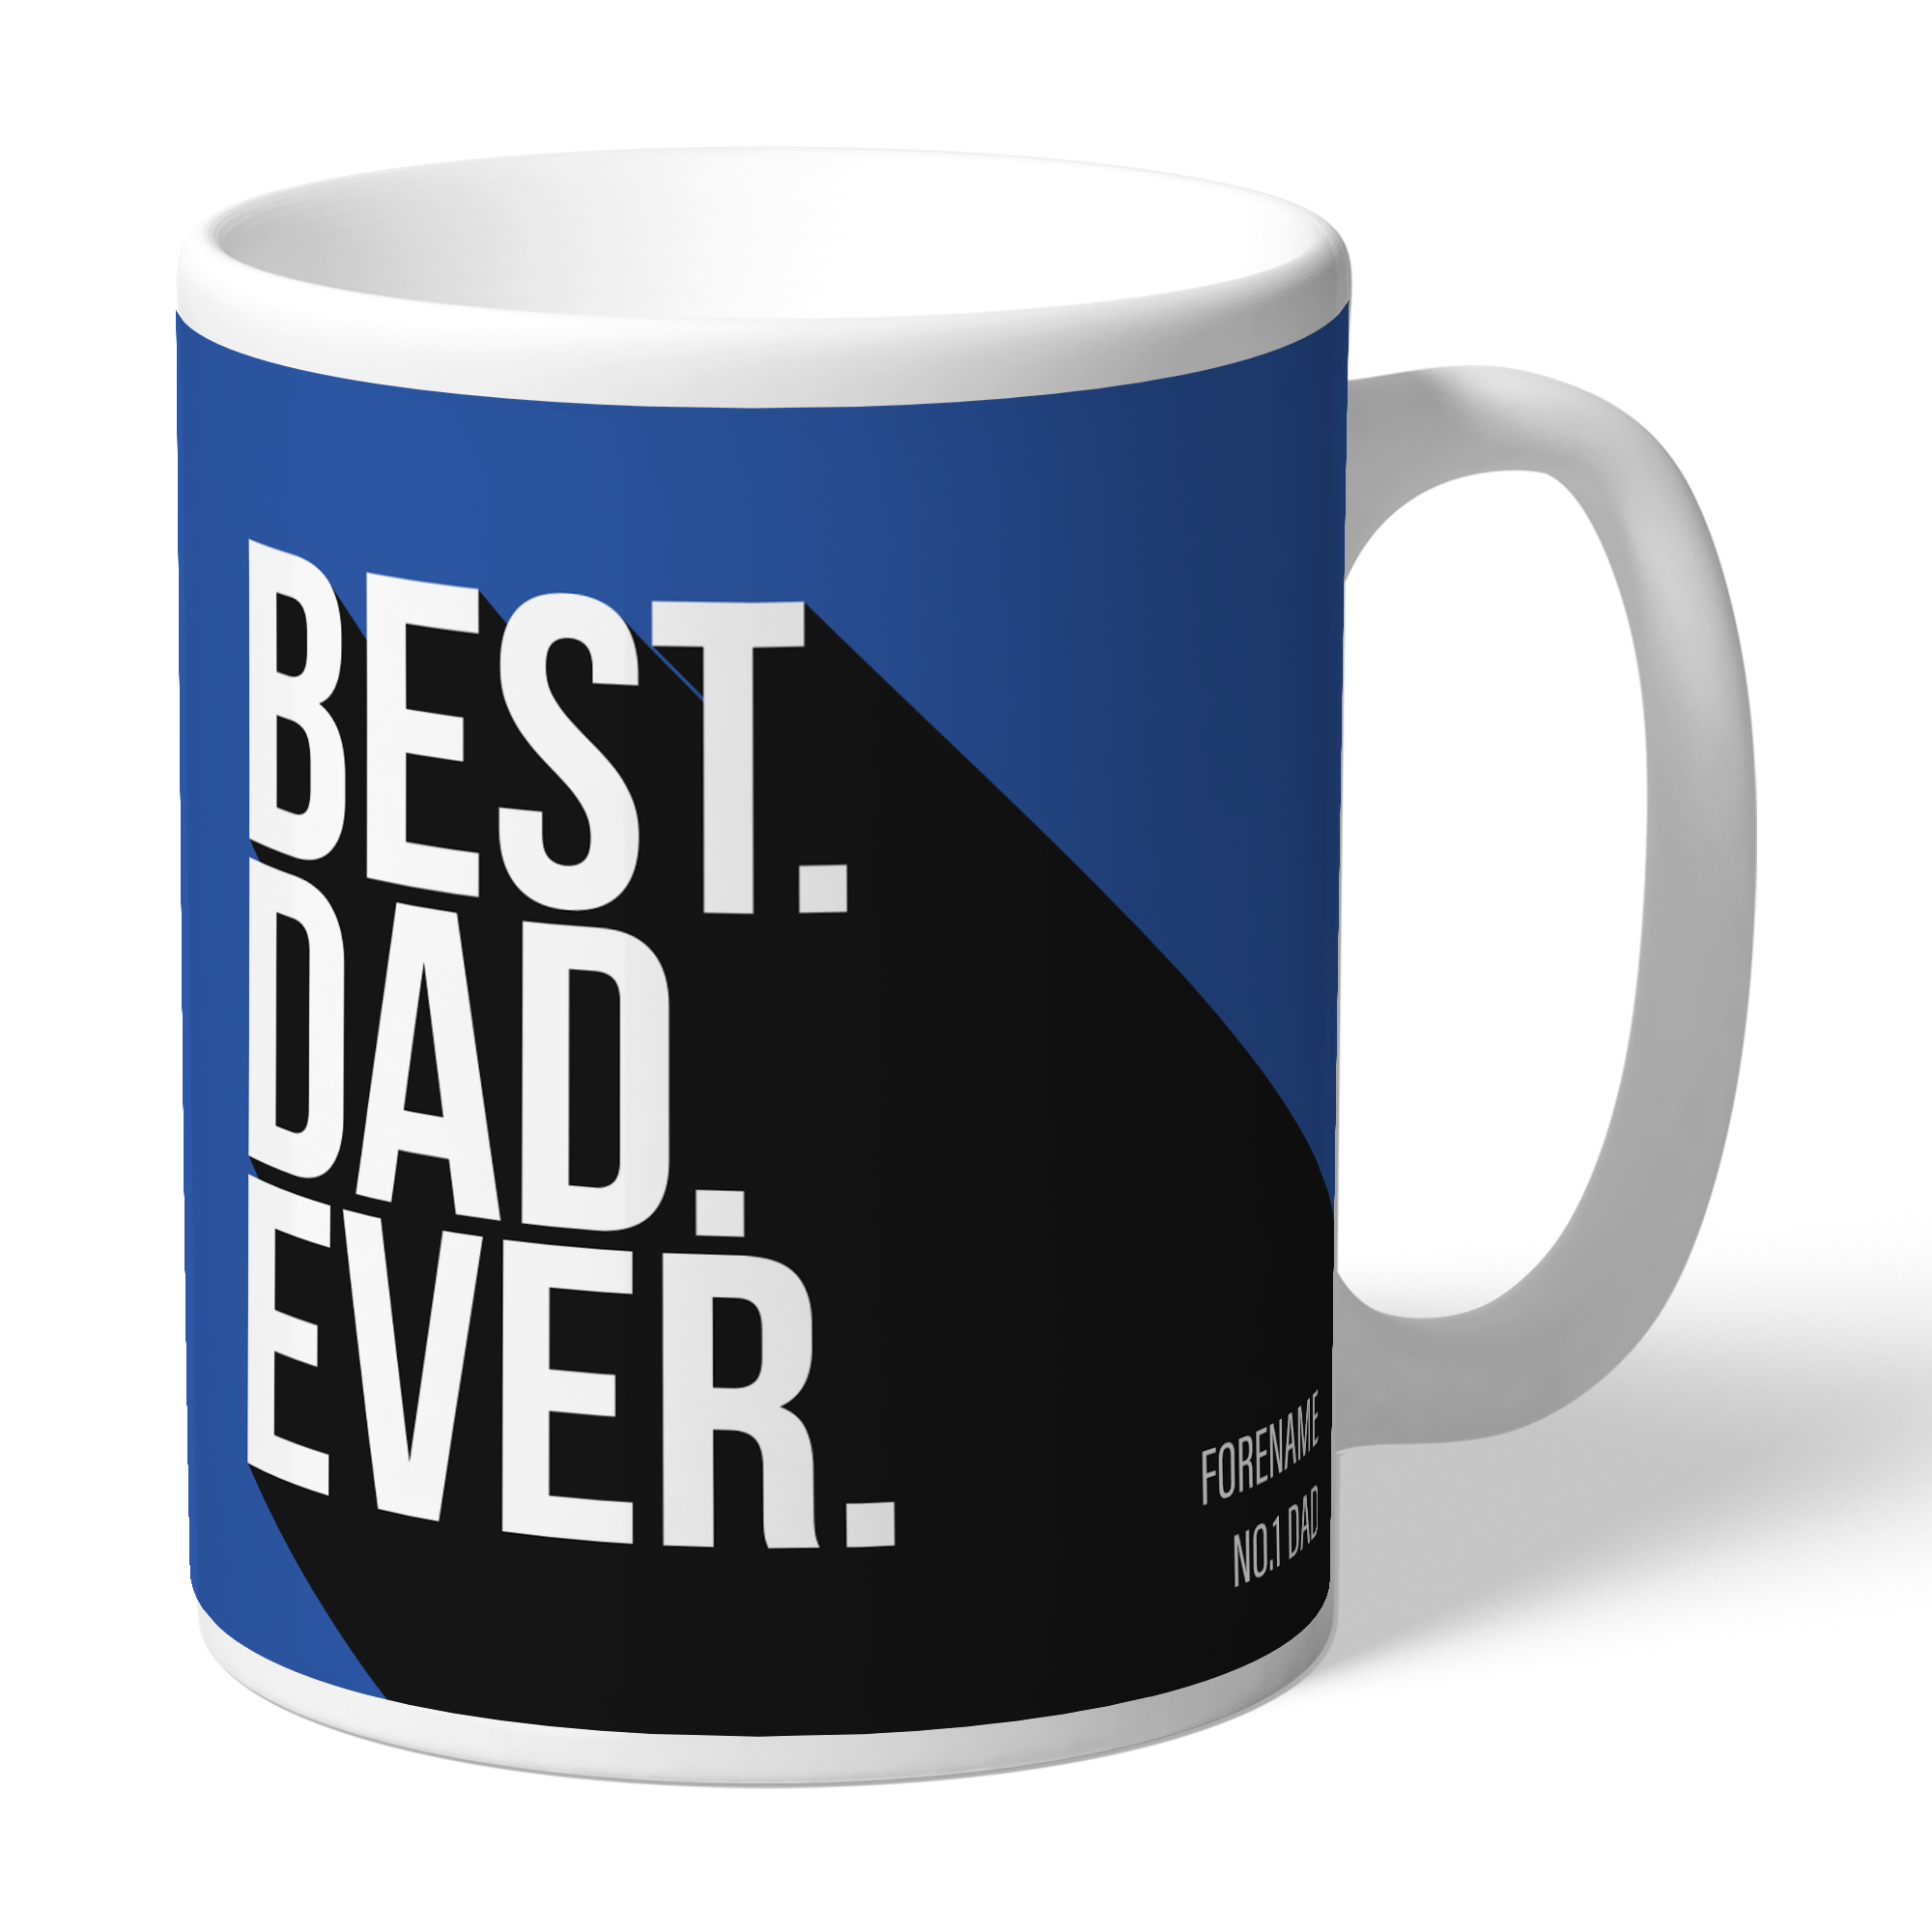 Sheffield Wednesday Best Dad Ever Mug